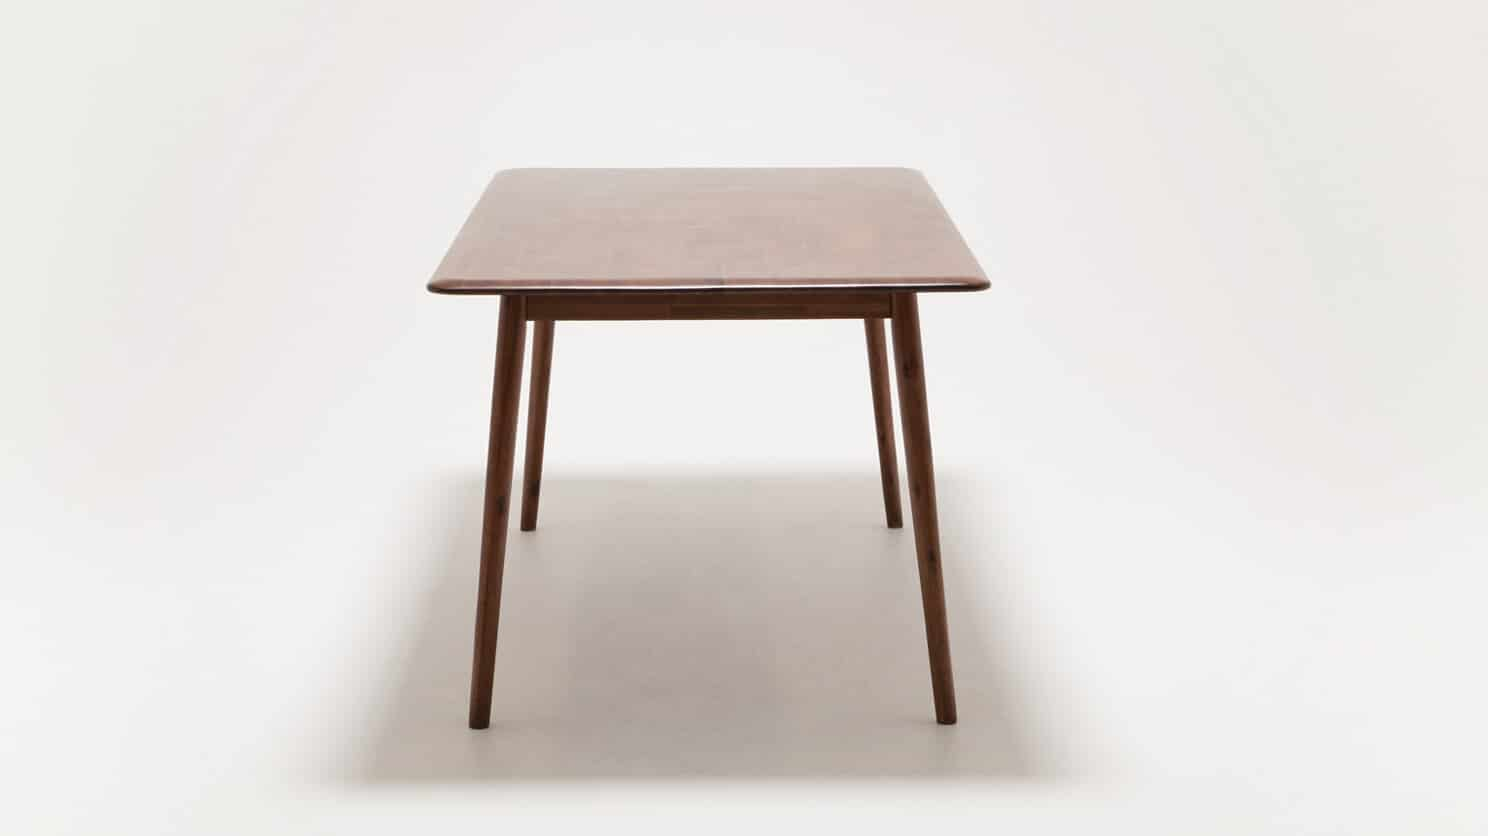 7110 300 49 6 dining tables kacia dining table side 01